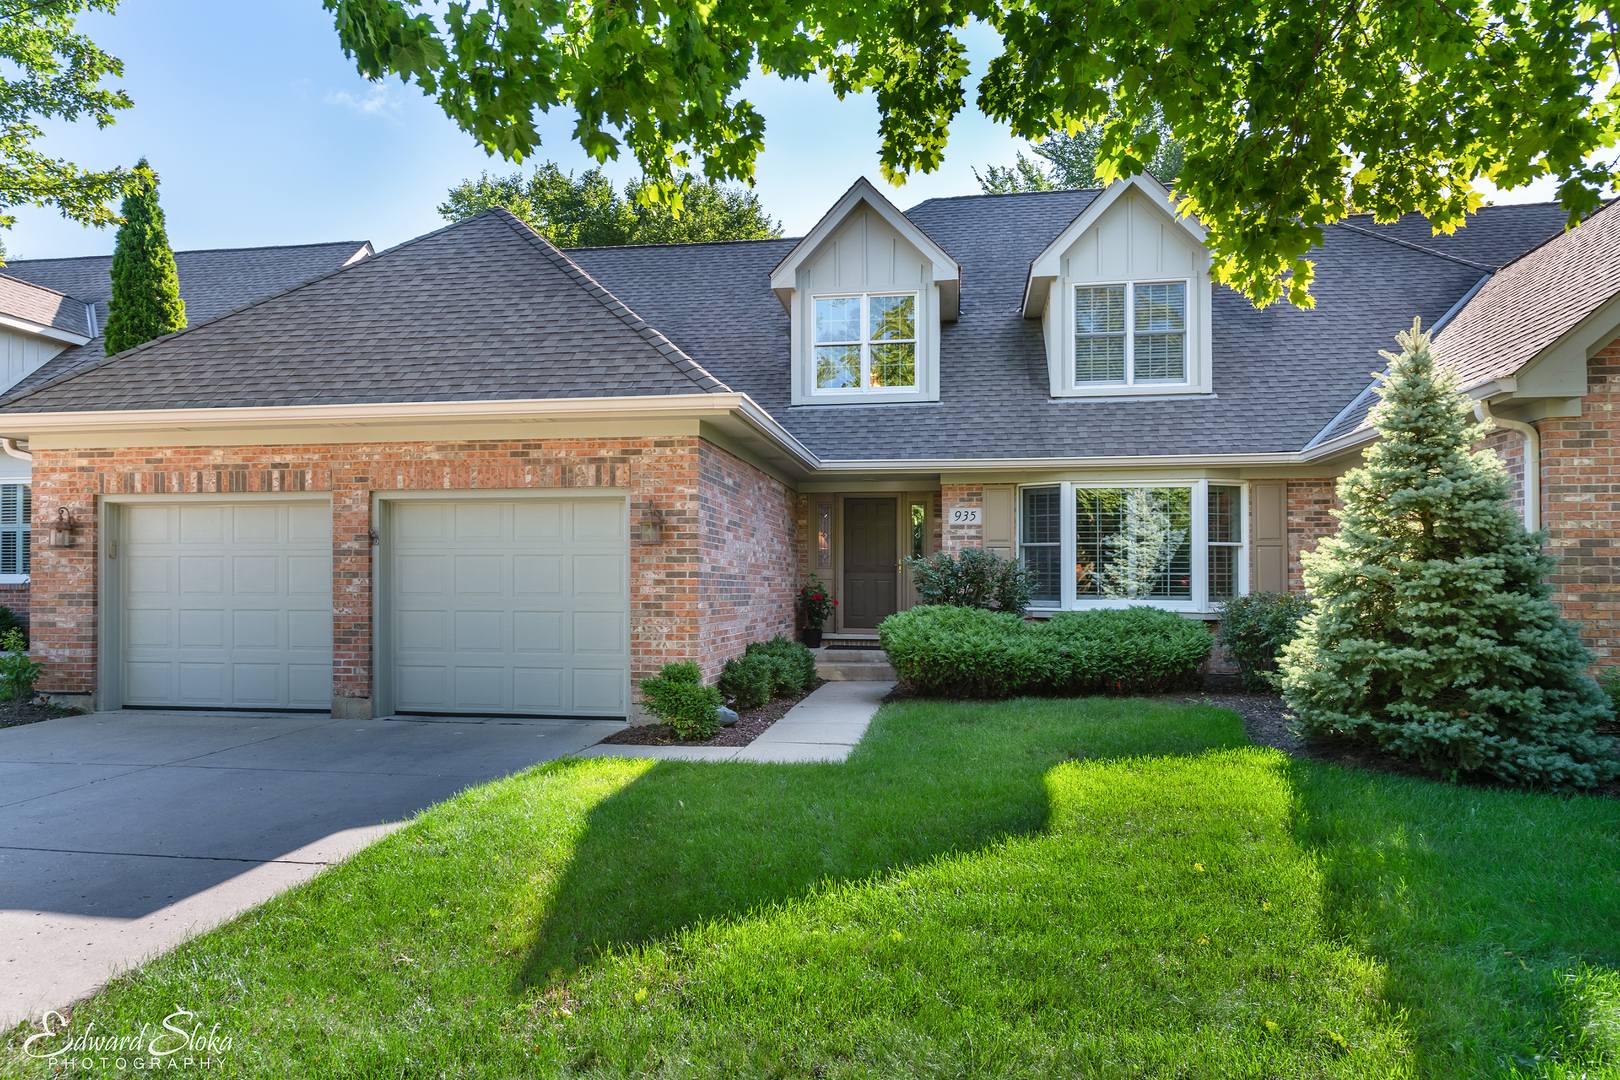 Photo for 935 Wedgewood Drive, Crystal Lake, IL 60014 (MLS # 10511241)